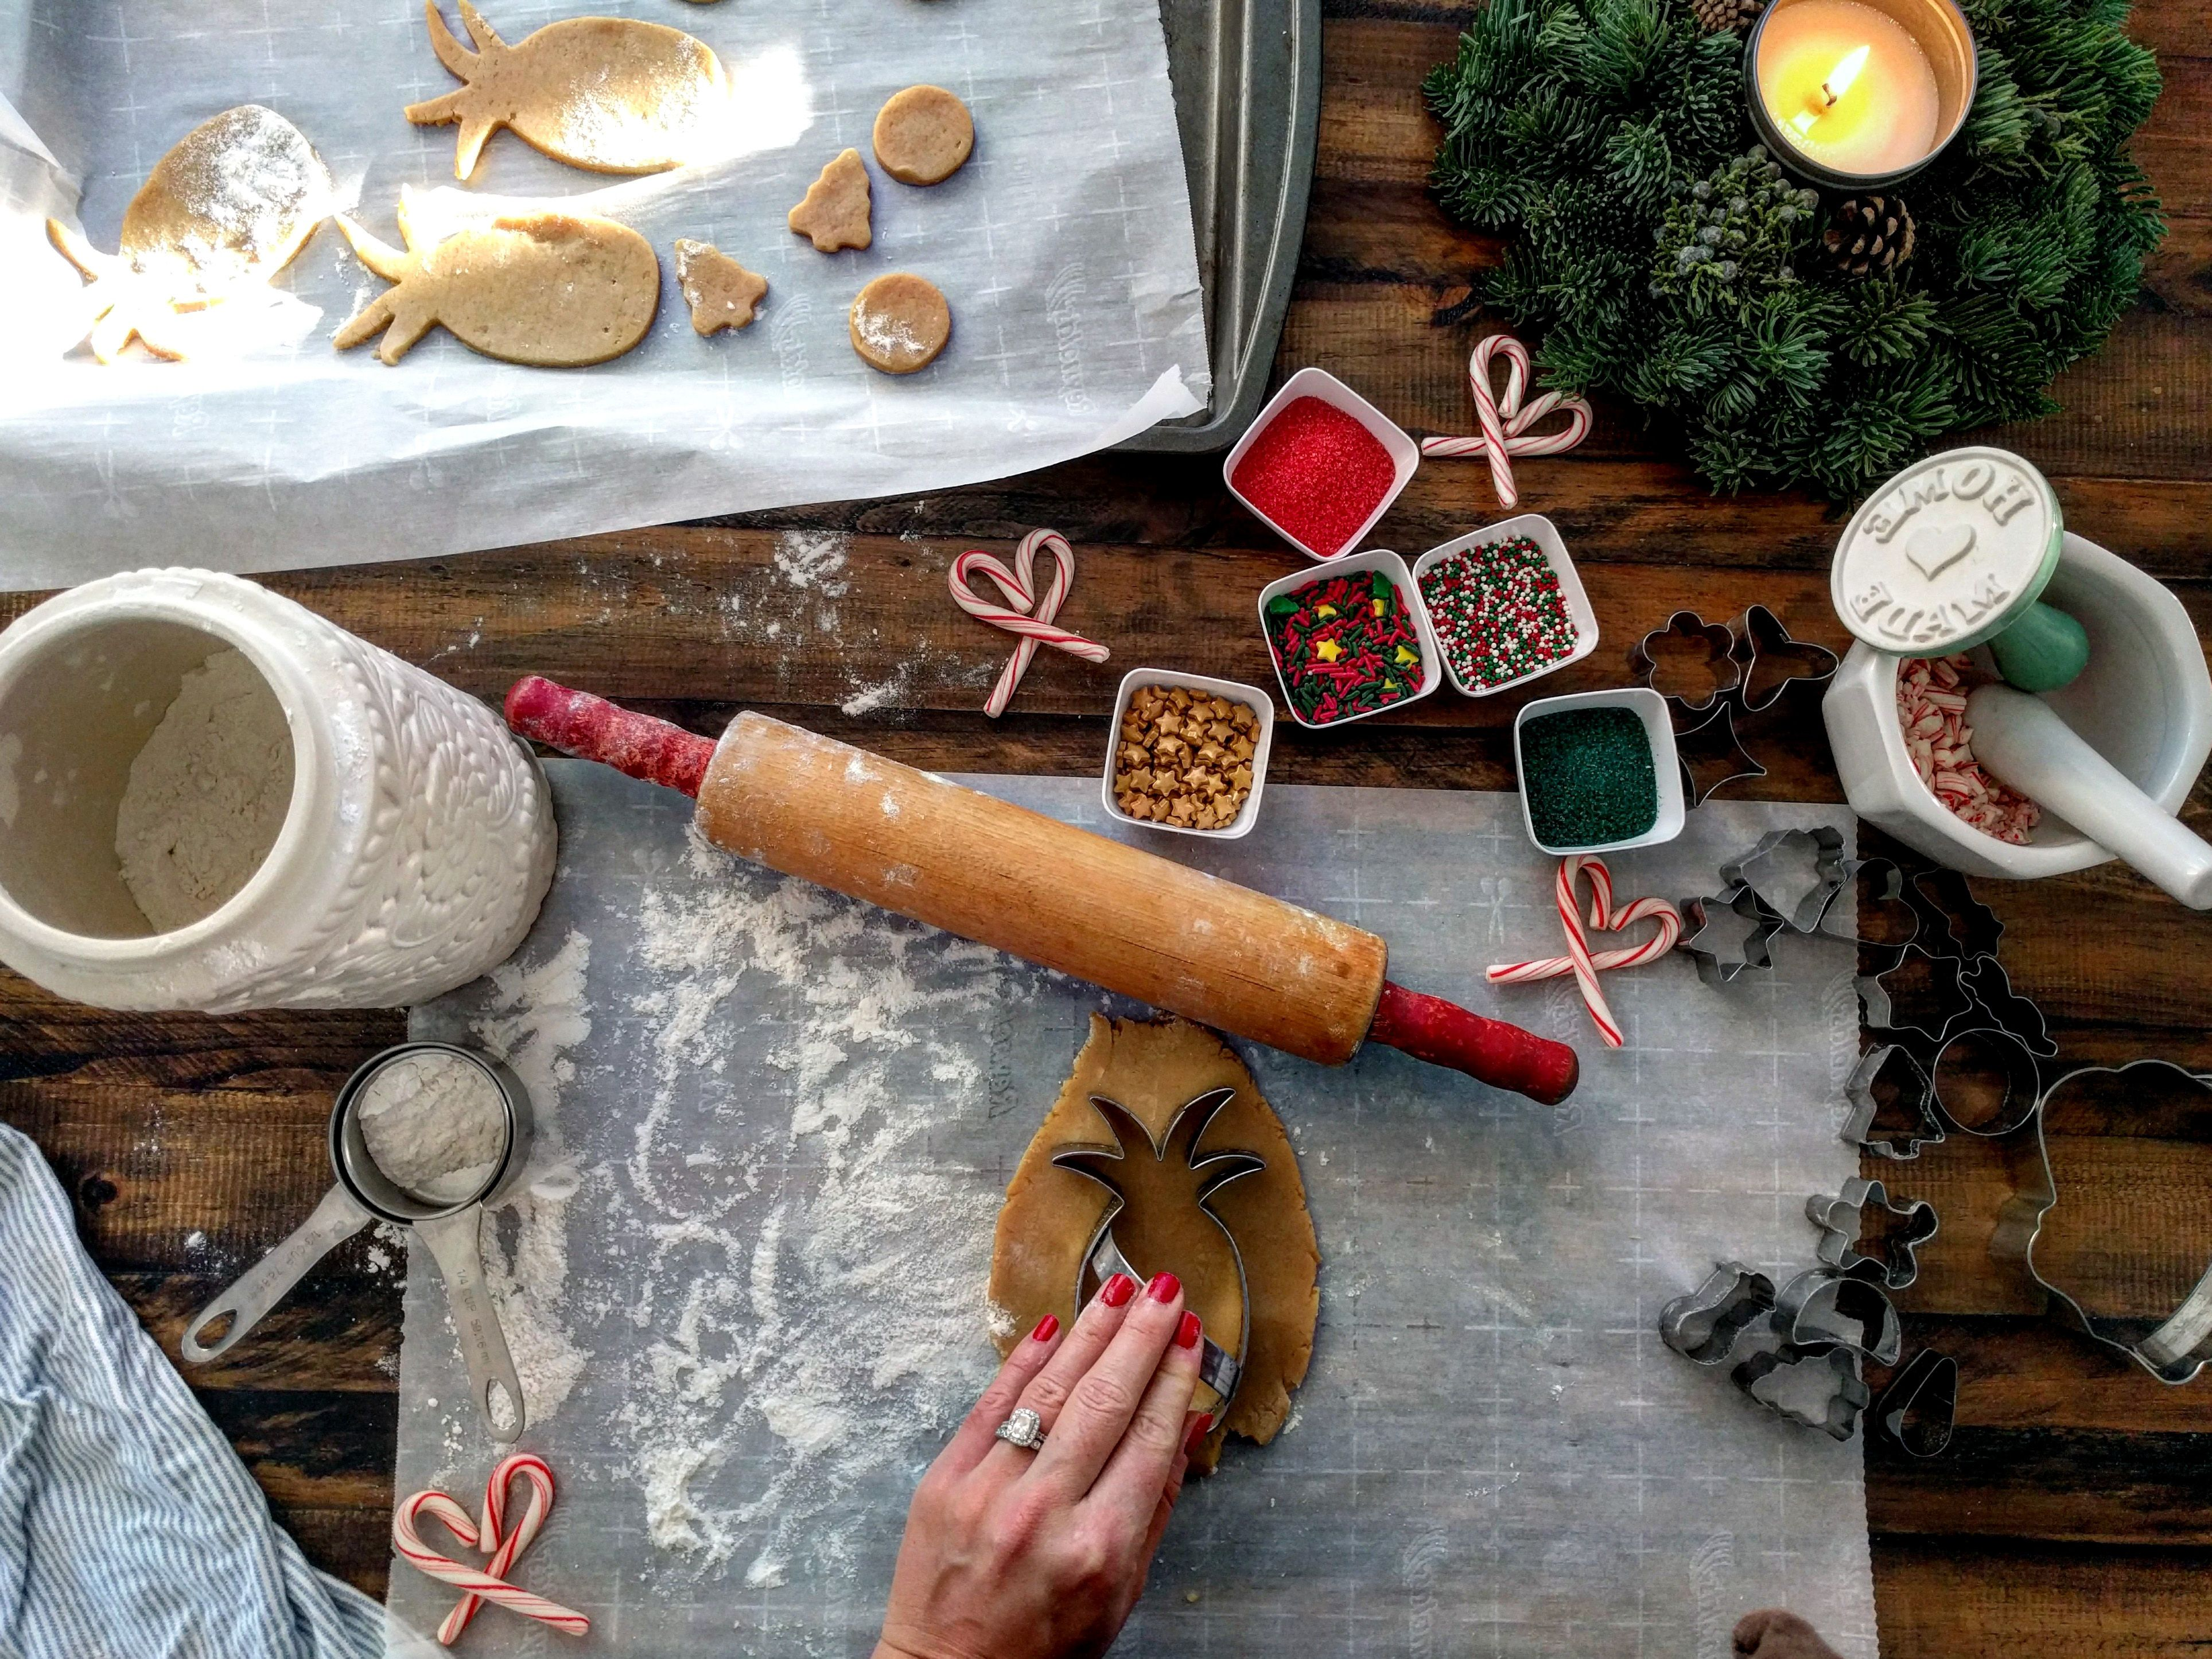 Holiday Cookie Recipes From Around the World #cookies #holiday #recipes #baking #foodies # ...